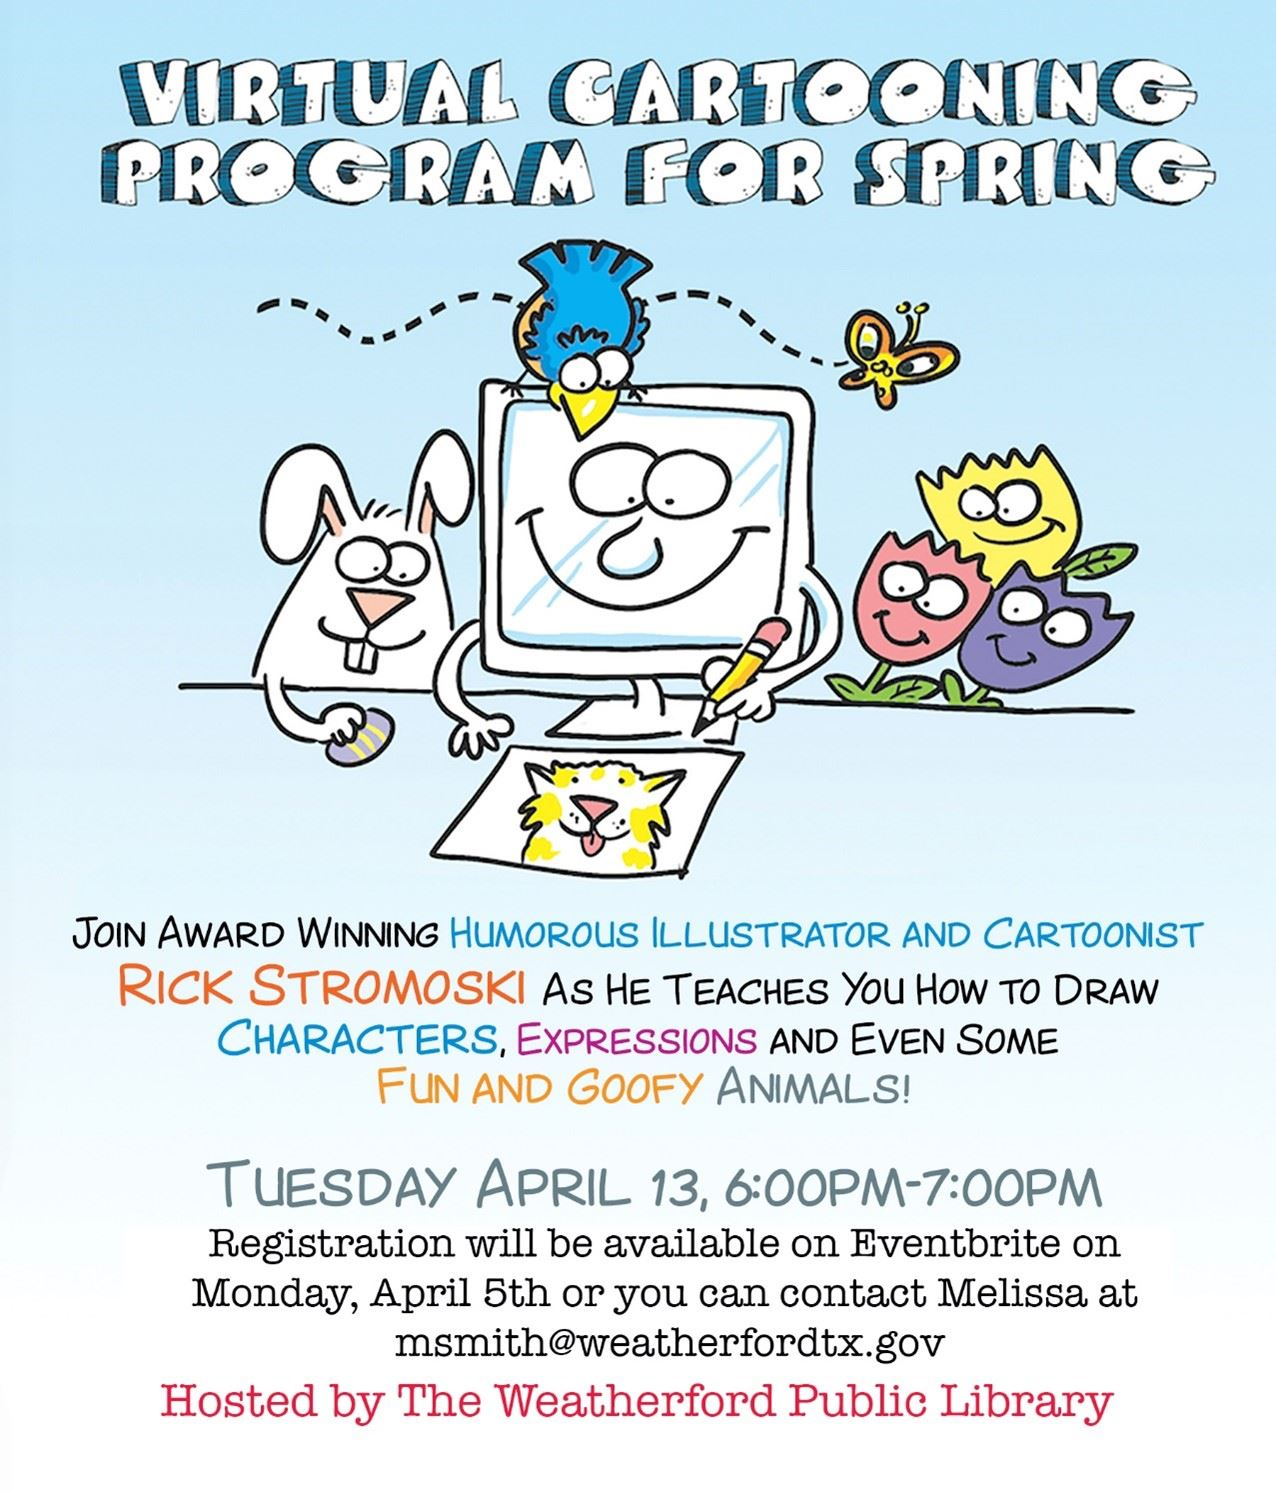 Cartooning Event Image - Tuesday, April 13th @ 6 p.m. - Eventbrite registration starts April 5th.